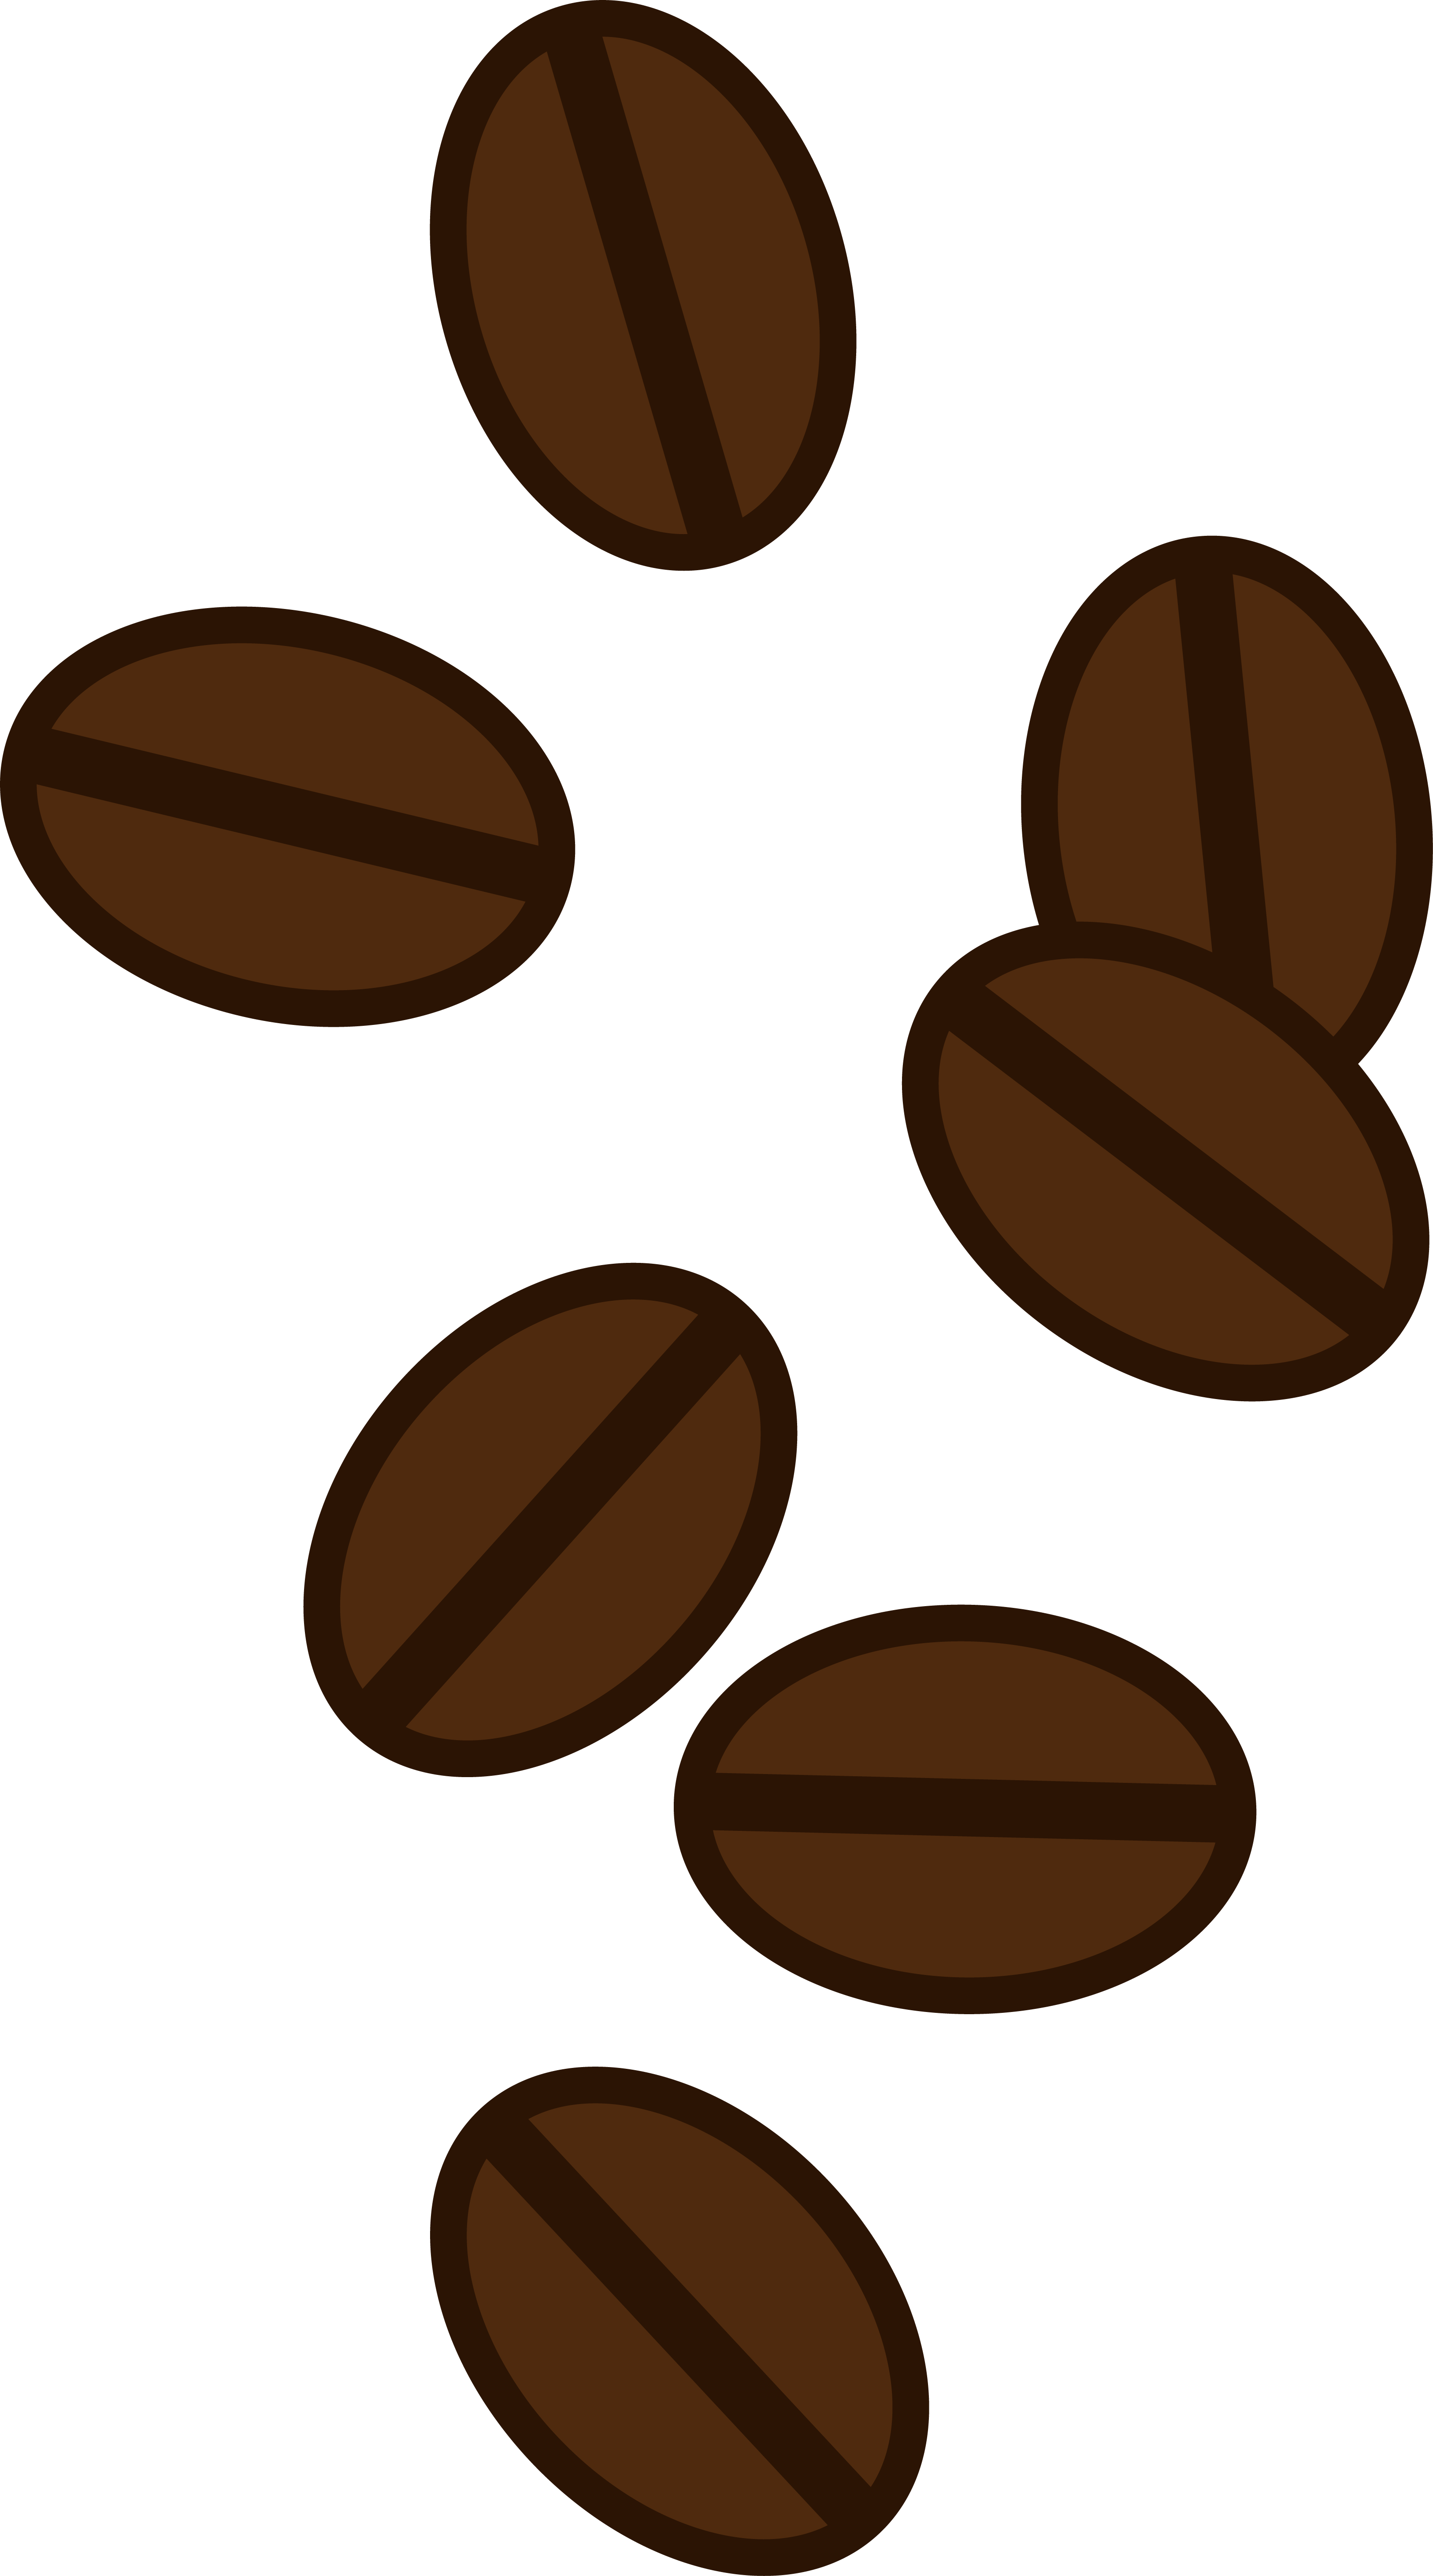 Coffe drawing coffee bean. Clip art free pinterest